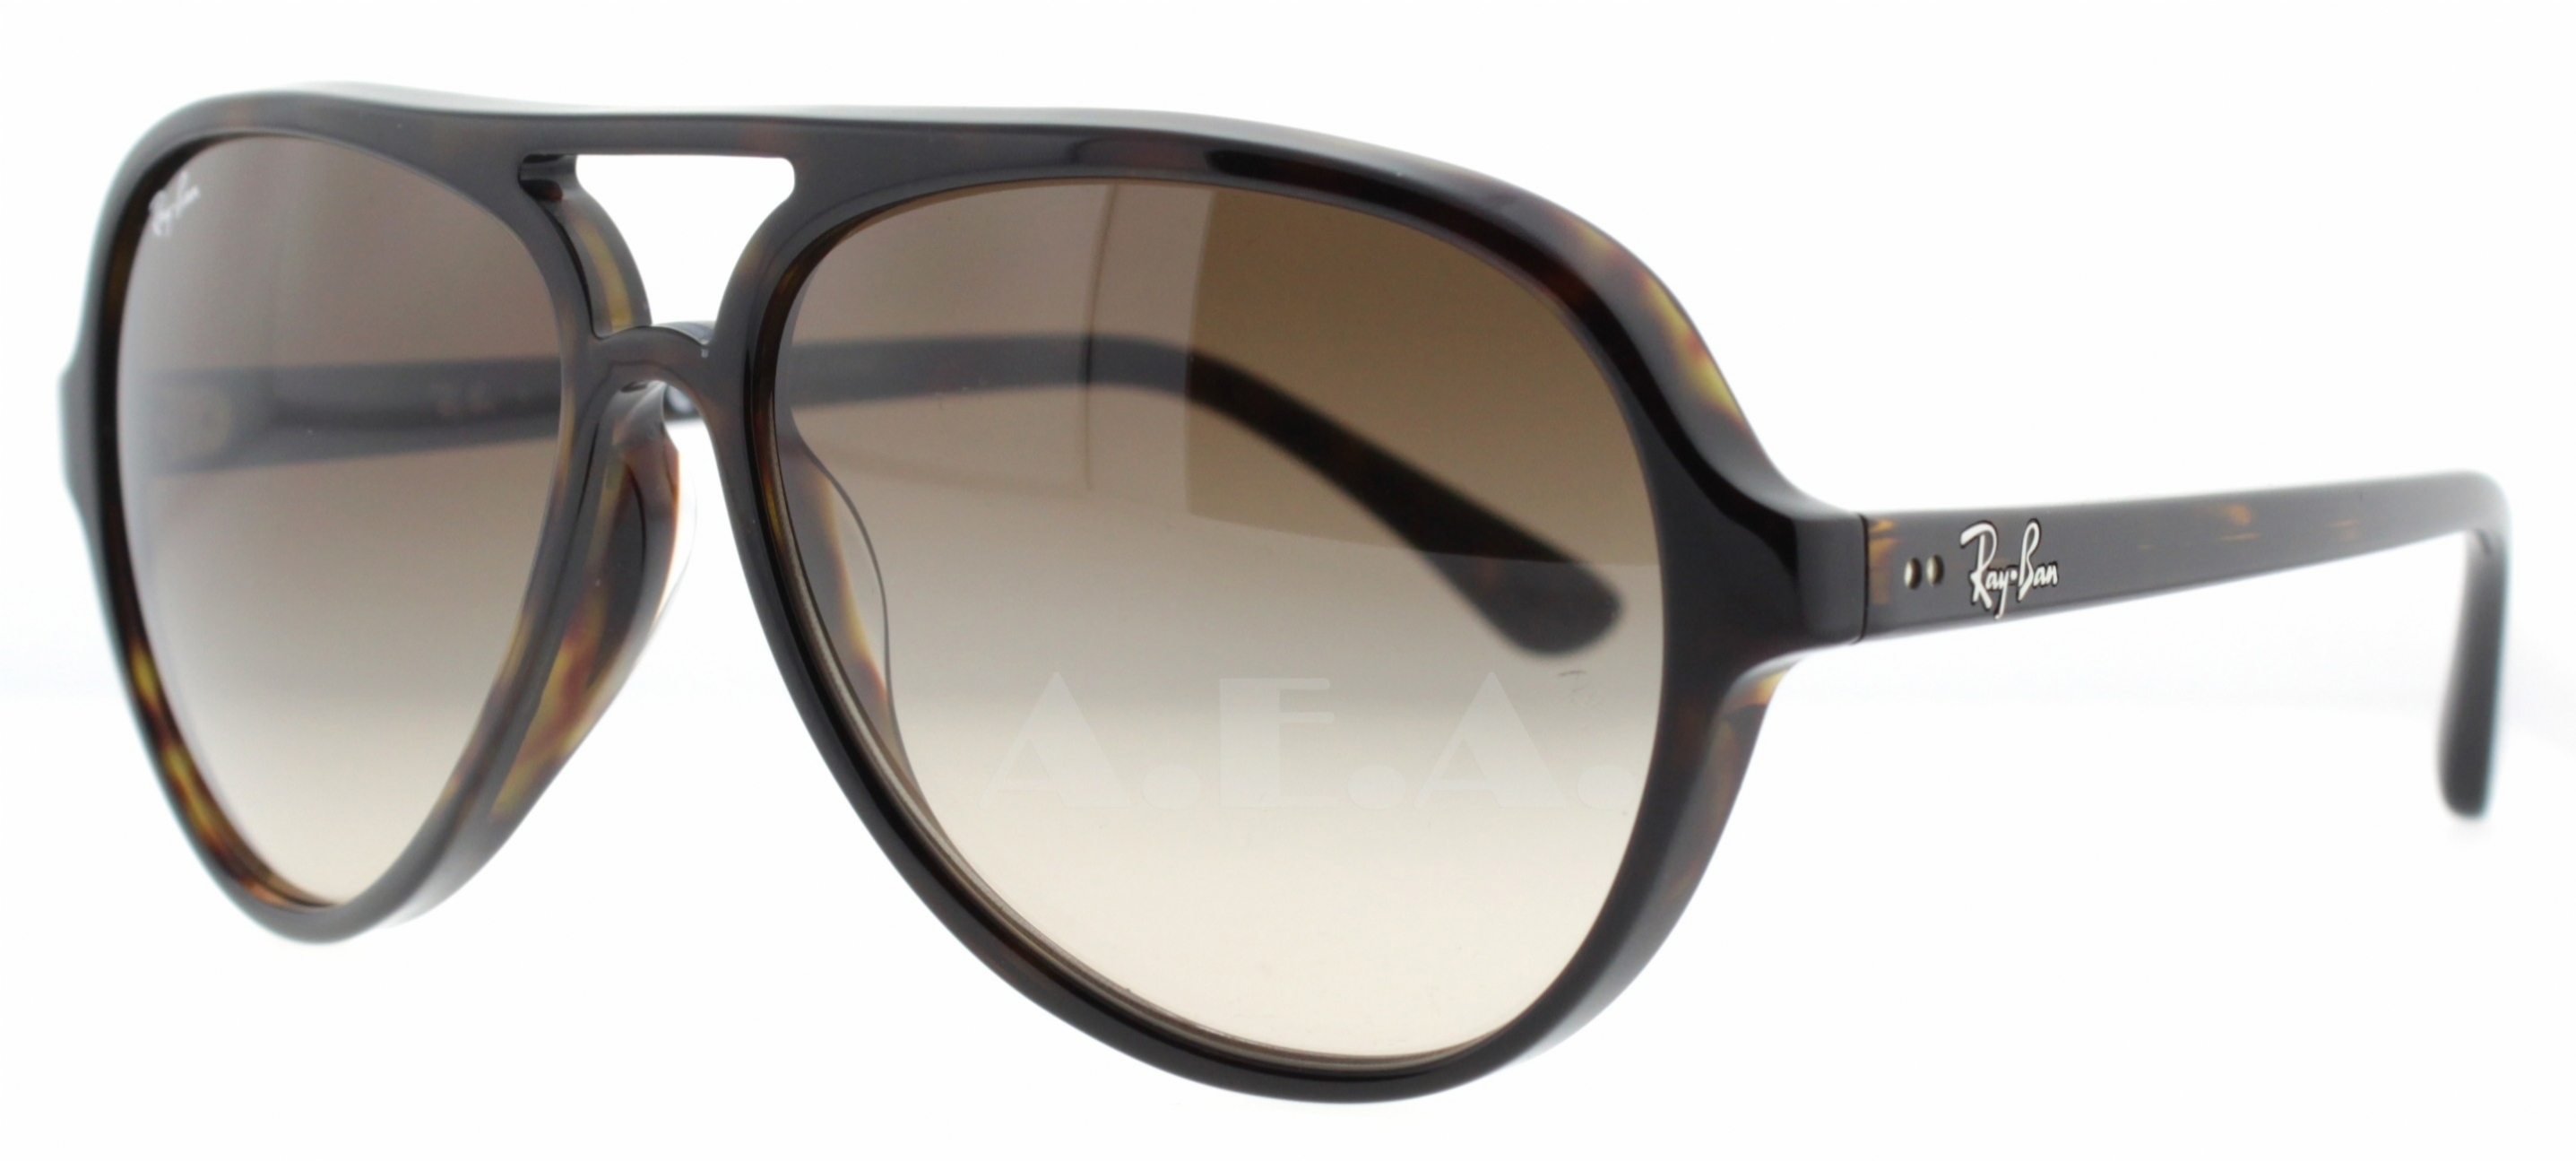 Ray ban 4132 price njv331 southern wisconsin bluegrass for Decor my eyes